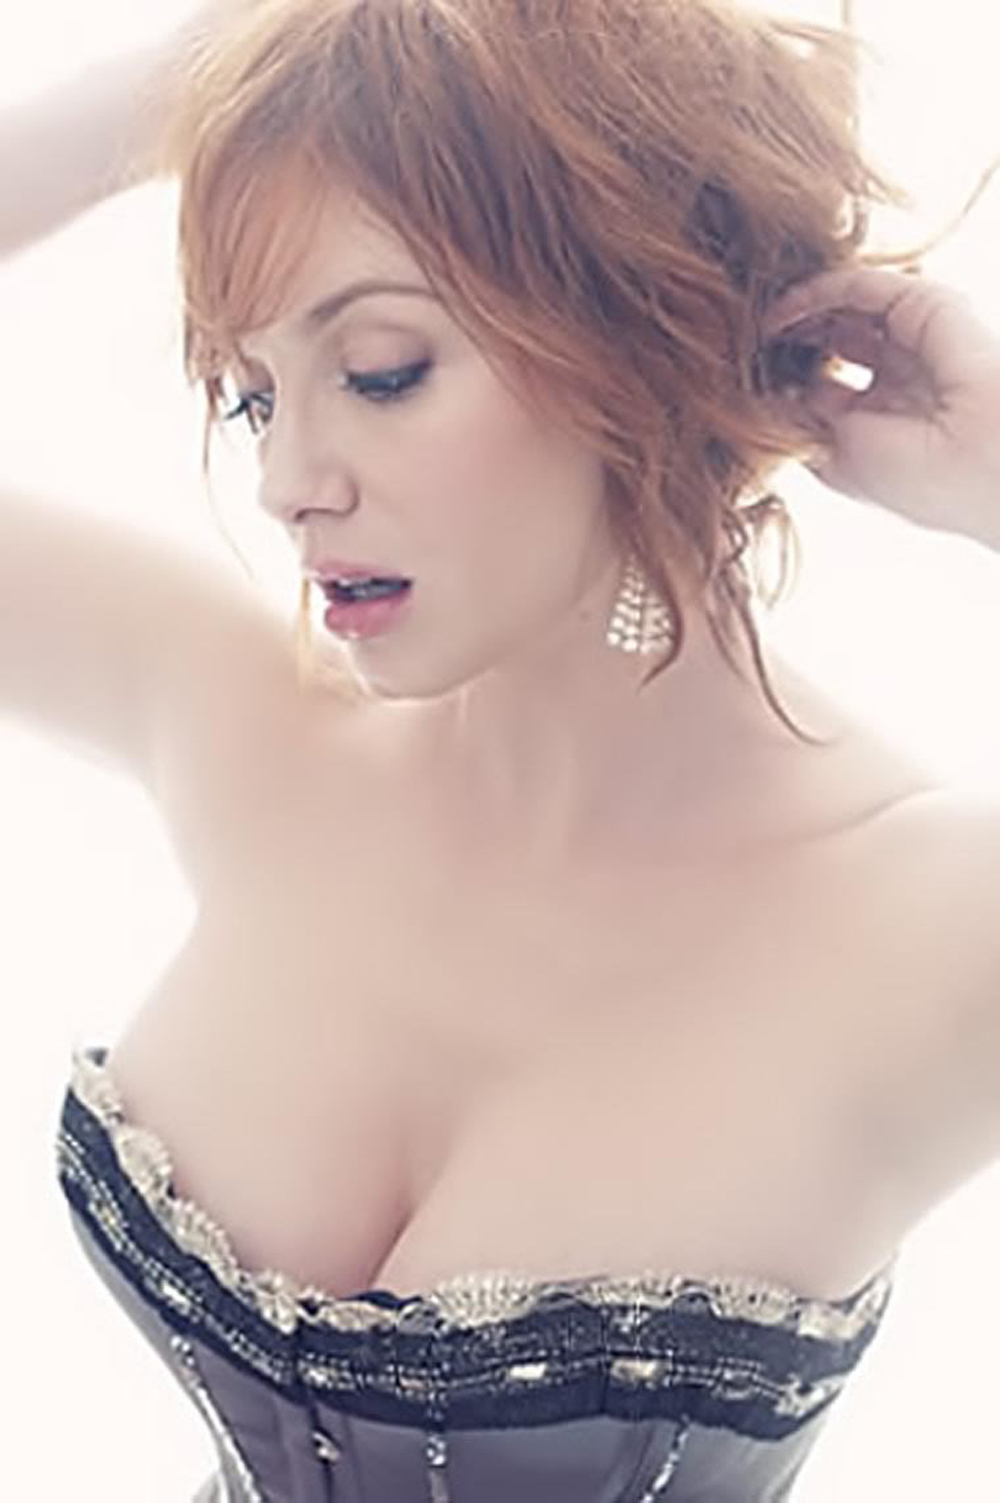 christina-hendricks-hot-pic-635c7